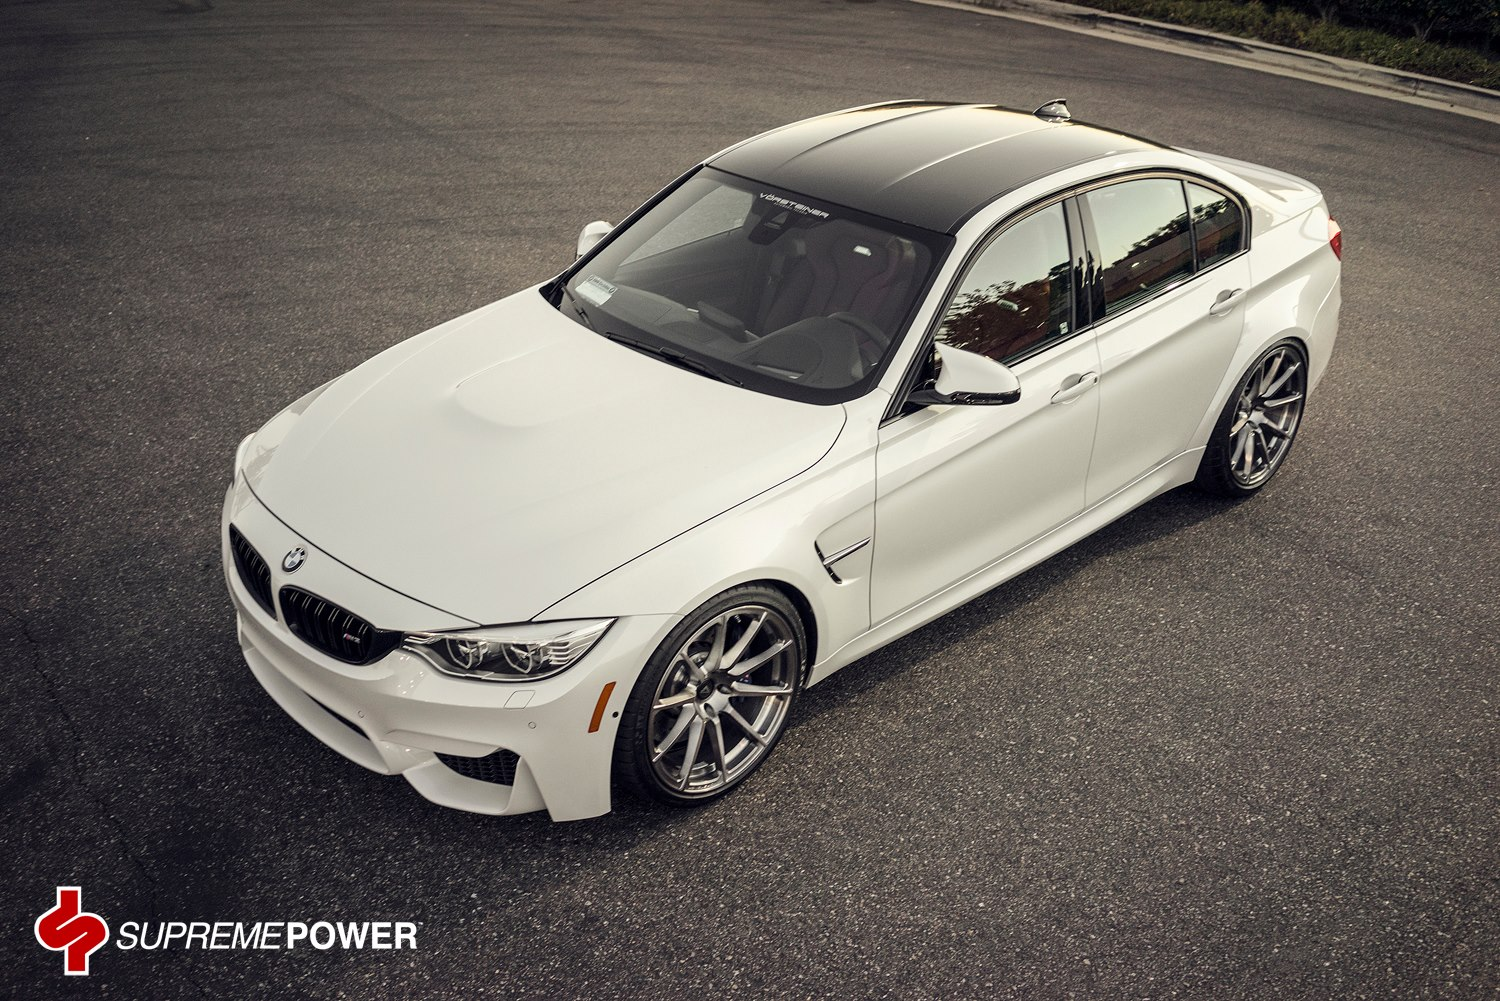 2014 Bmw M3 On Forged Vorsteiner Wheels Gtspirit